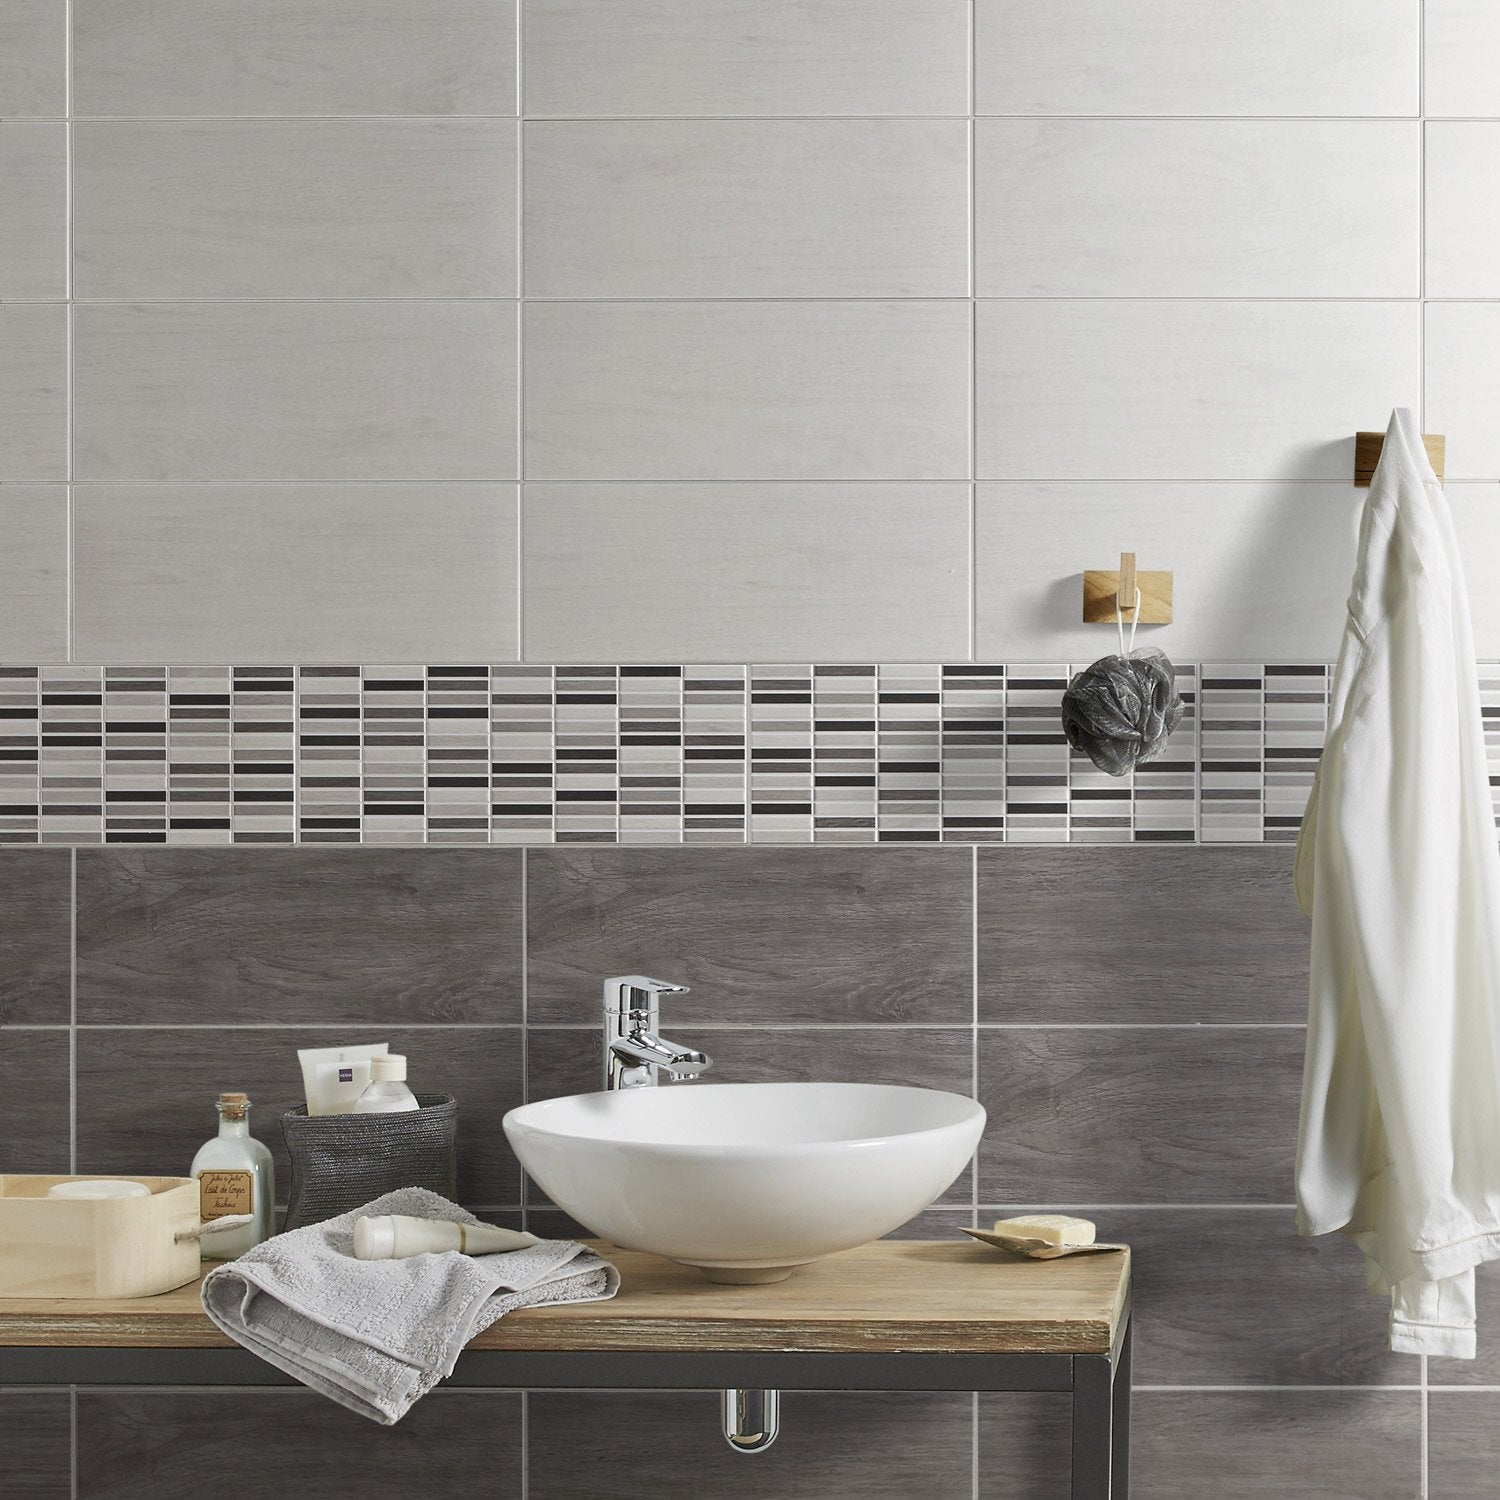 Fa ence mur gris cottage x cm leroy merlin for Faillance de salle de bain